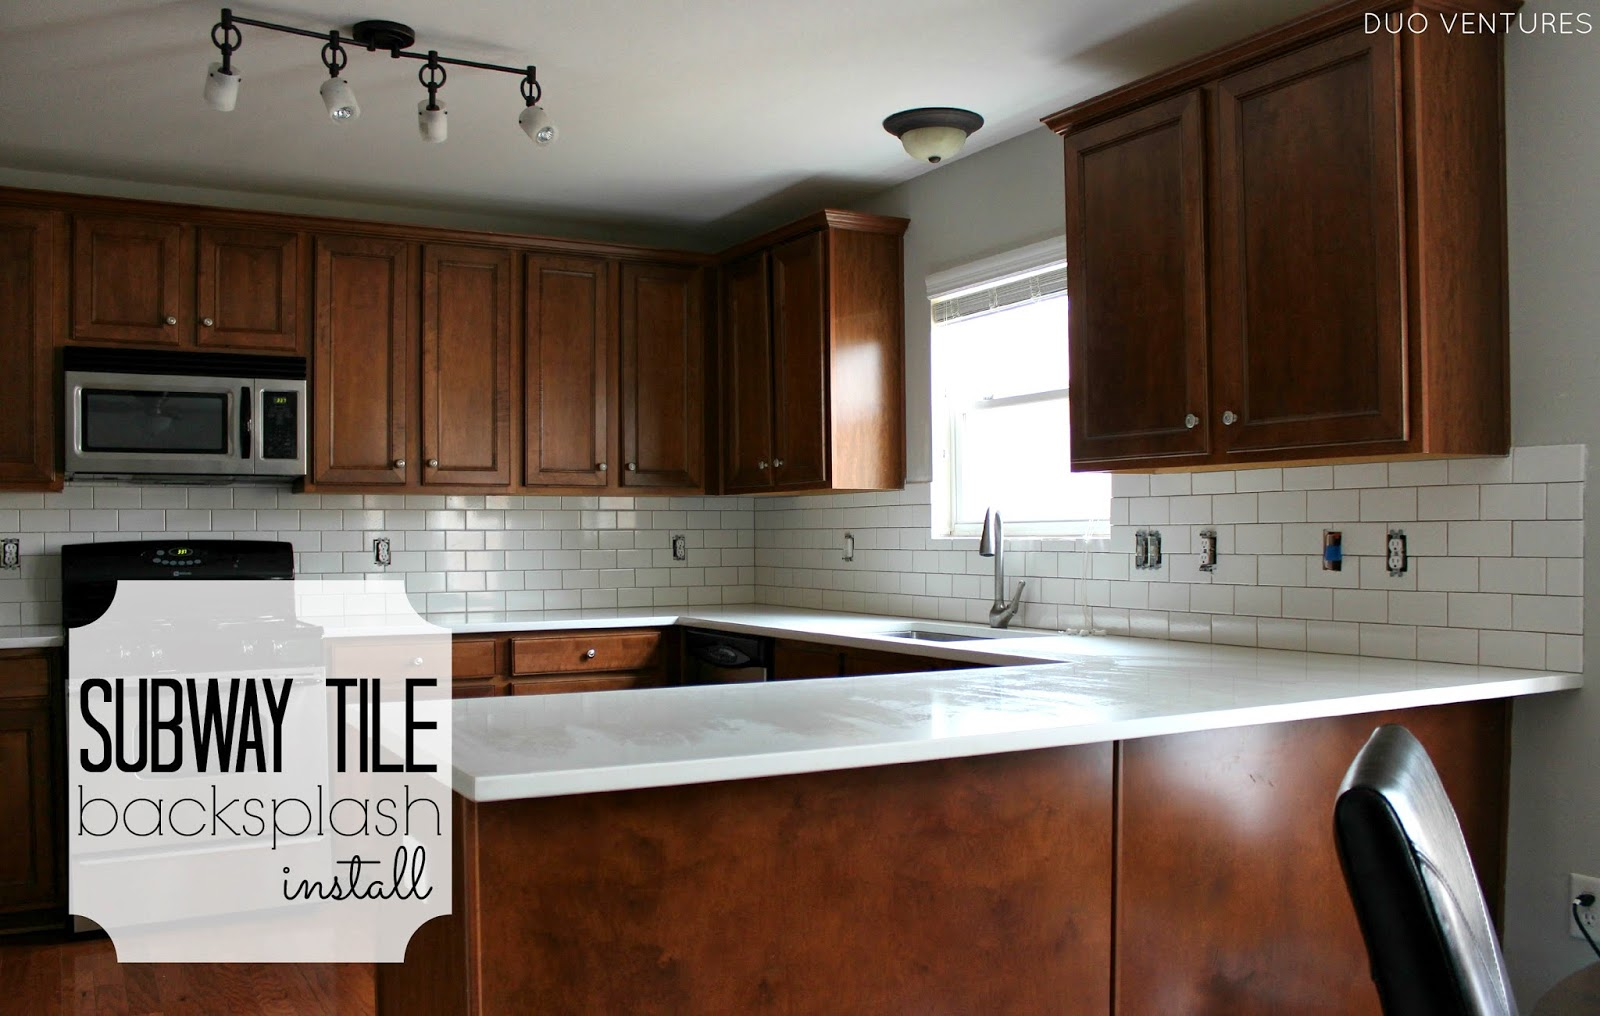 duo ventures: kitchen makeover: subway tile backsplash installation